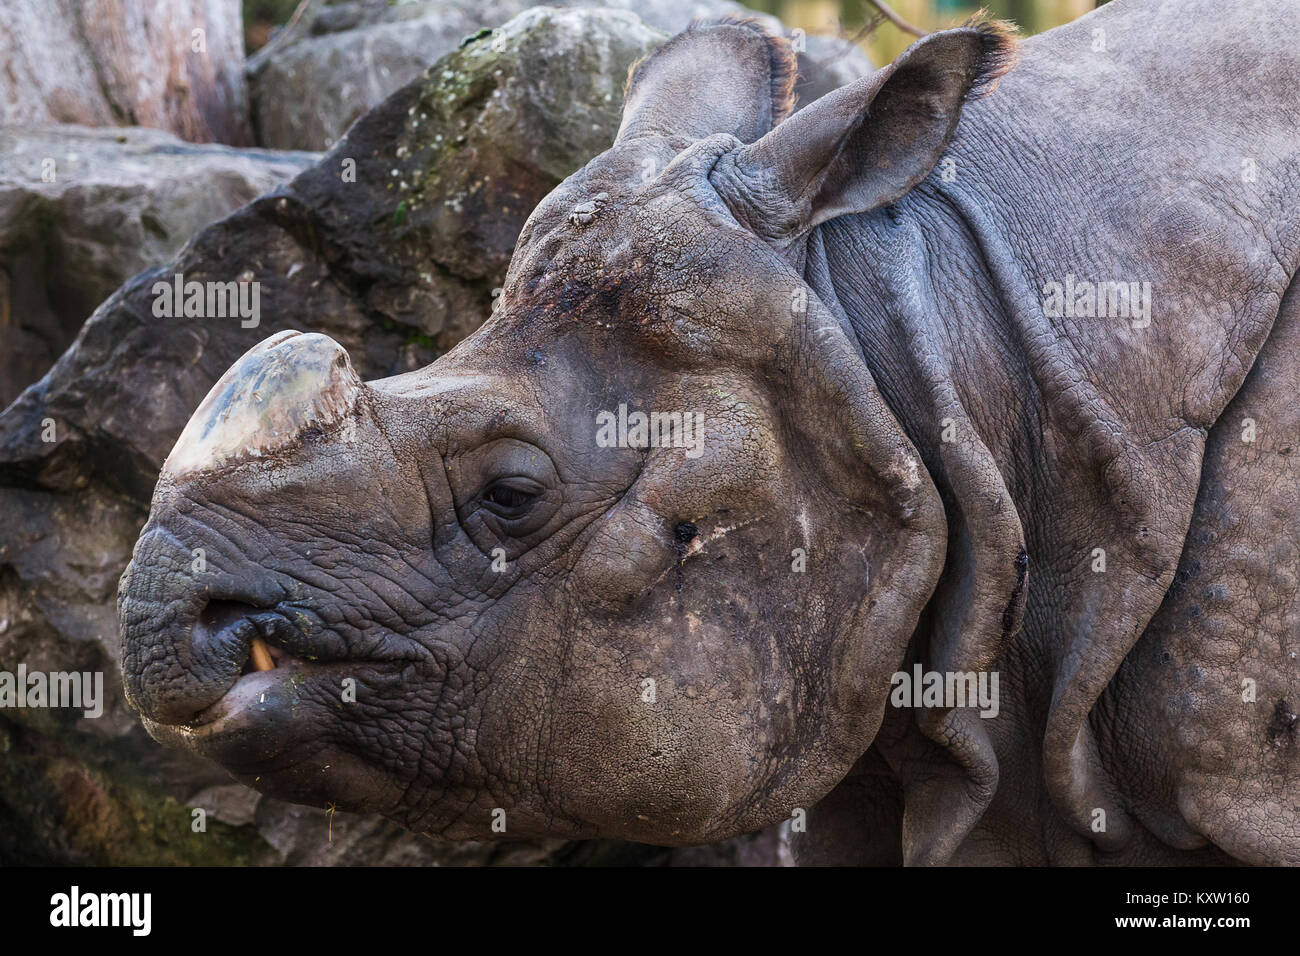 Side on view of a greater one-horned rhinoceros as it passes by. - Stock Image